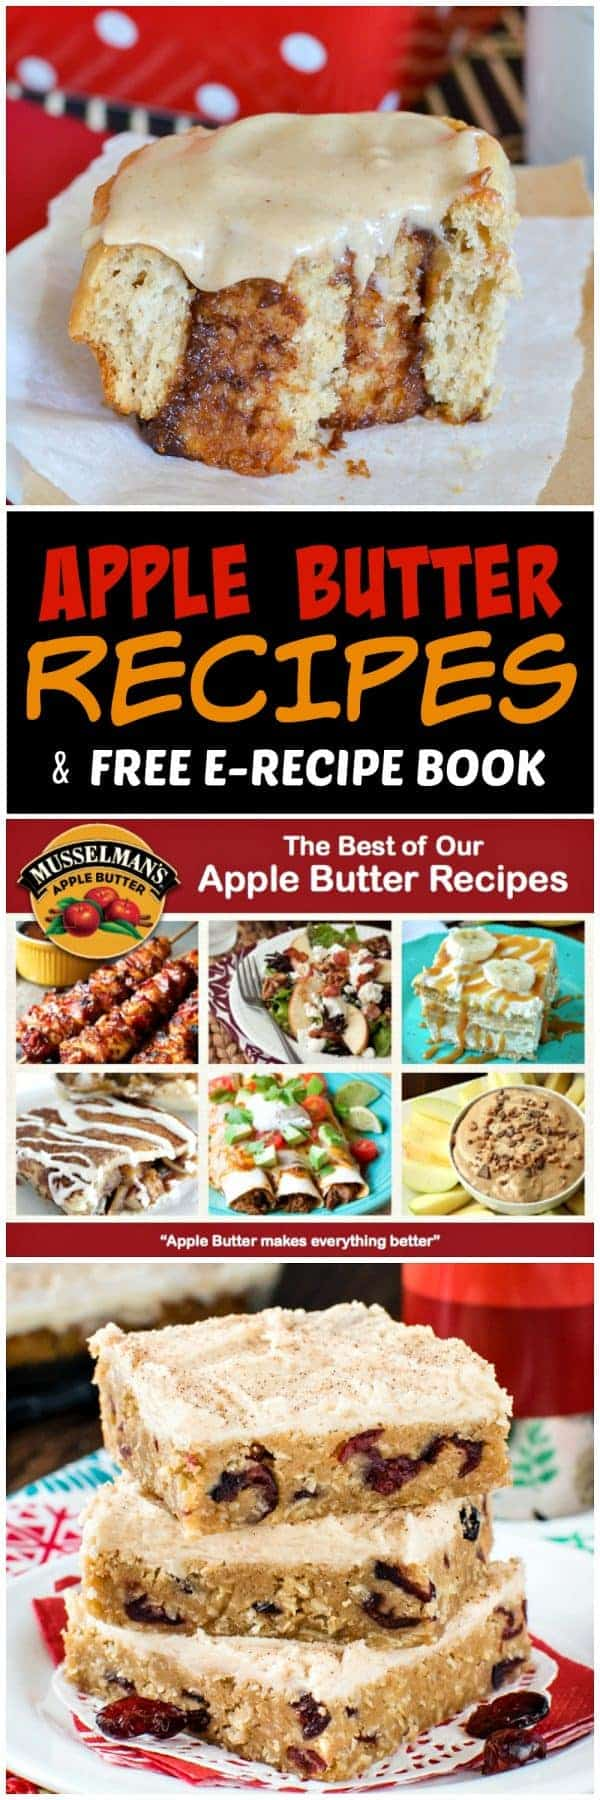 Apple Butter Recipes - find these easy apple butter recipes in the free e-recipe book provided by Musselman's